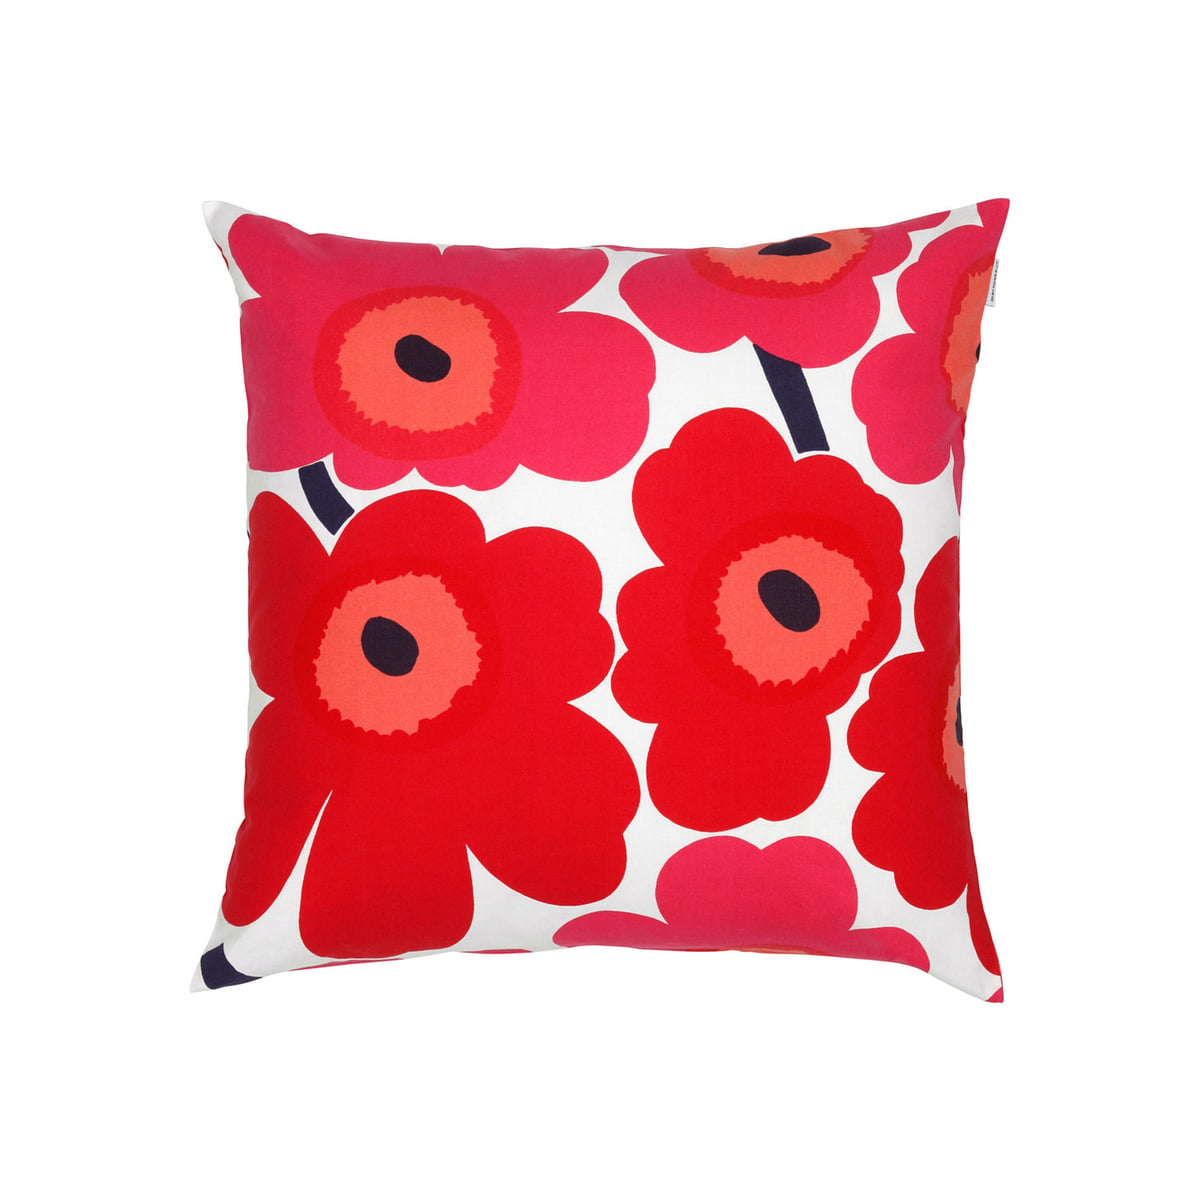 pieni unikko housse de coussin de marimekko. Black Bedroom Furniture Sets. Home Design Ideas